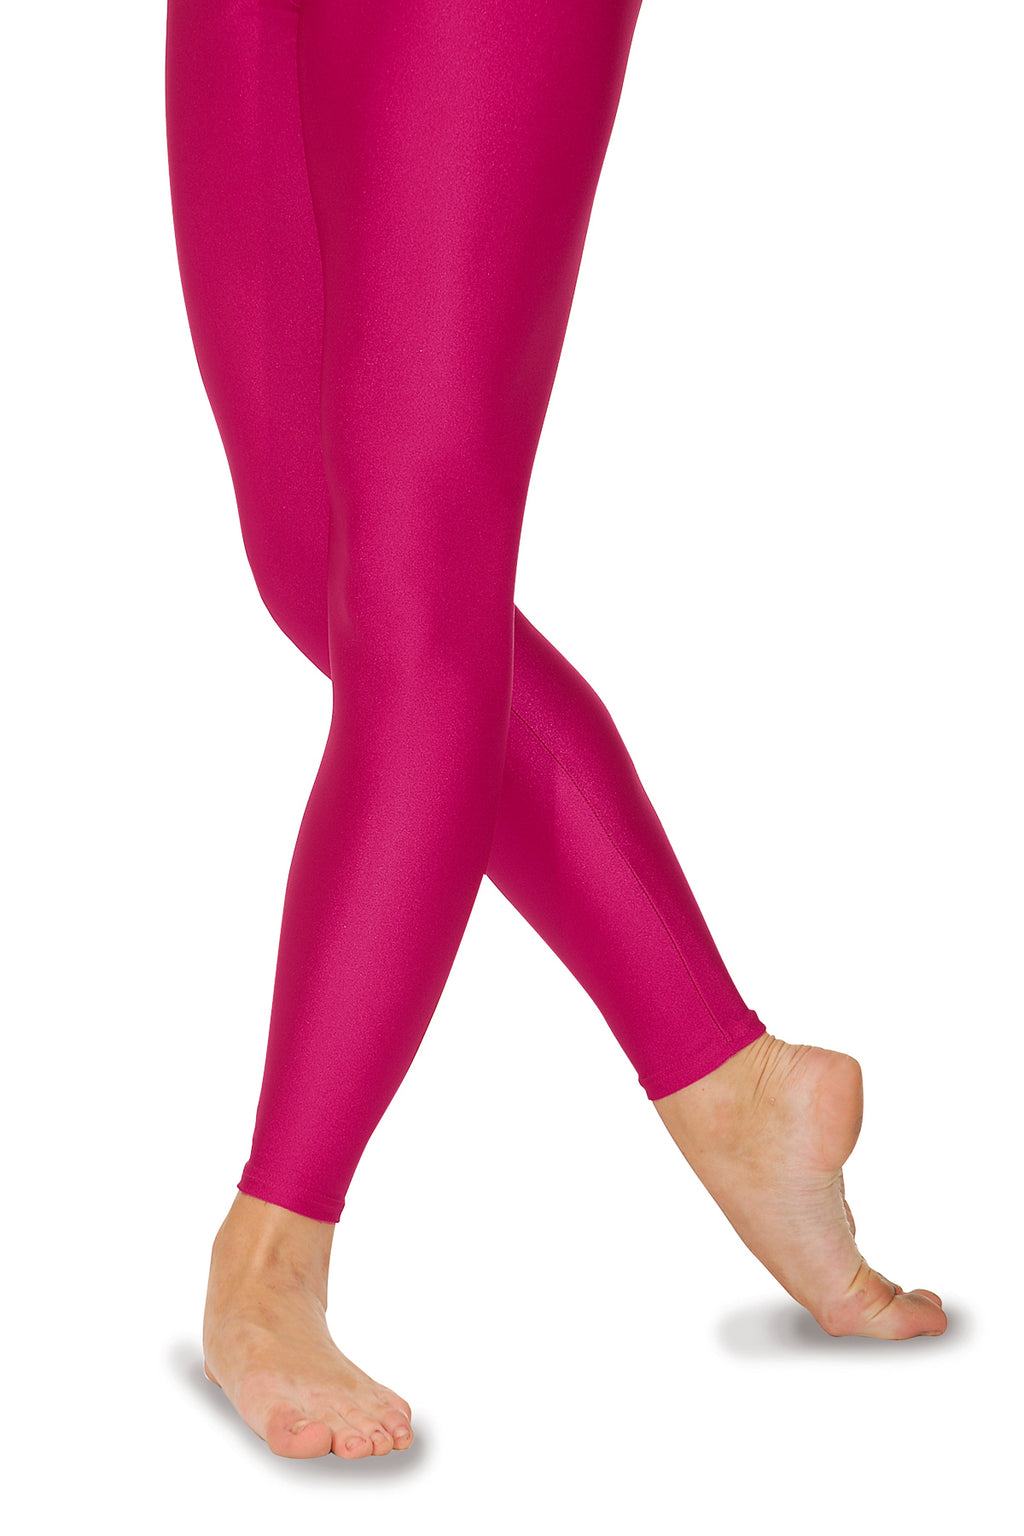 Roch Valley Footless Lycra Tights